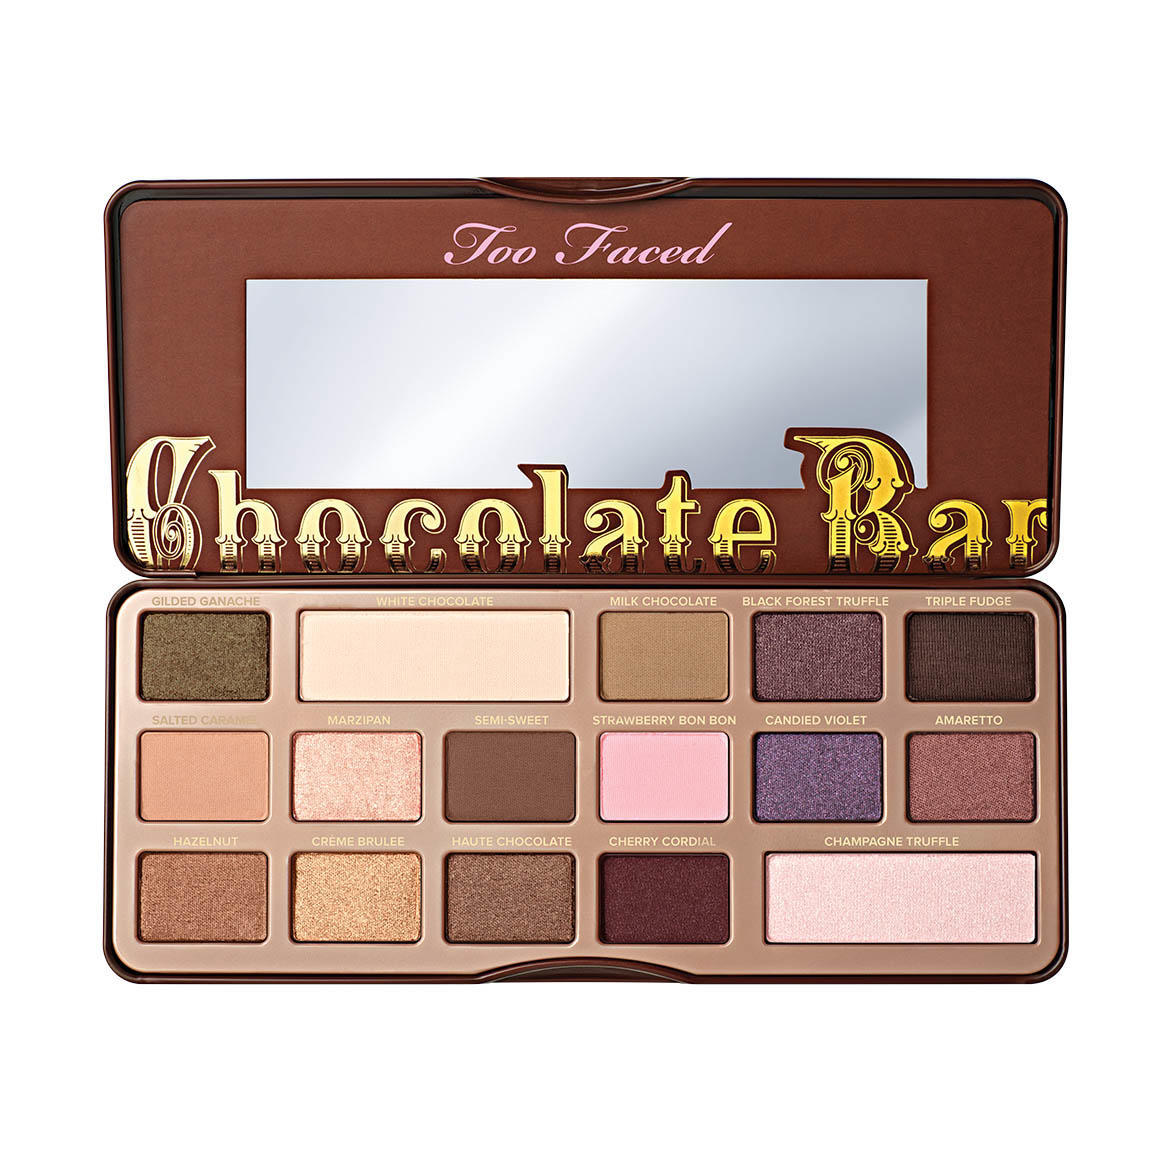 2nd Chance Too Faced Chocolate Bar Palette